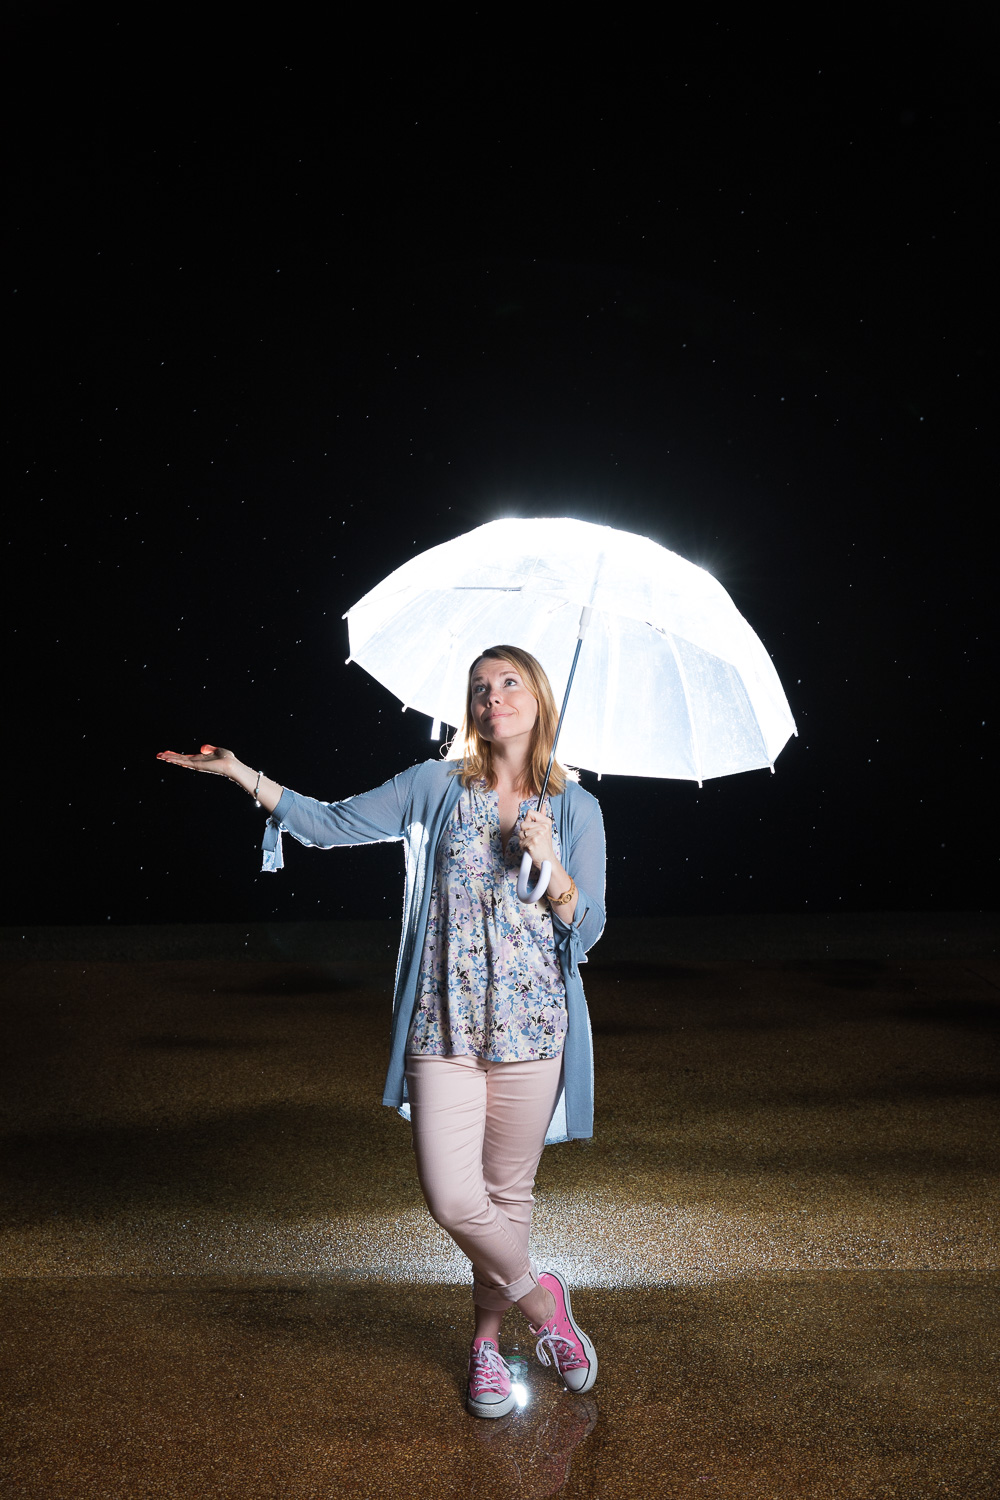 having a little fun with flashes and raindrops after Tori + Justin's sweet Southwind wedding